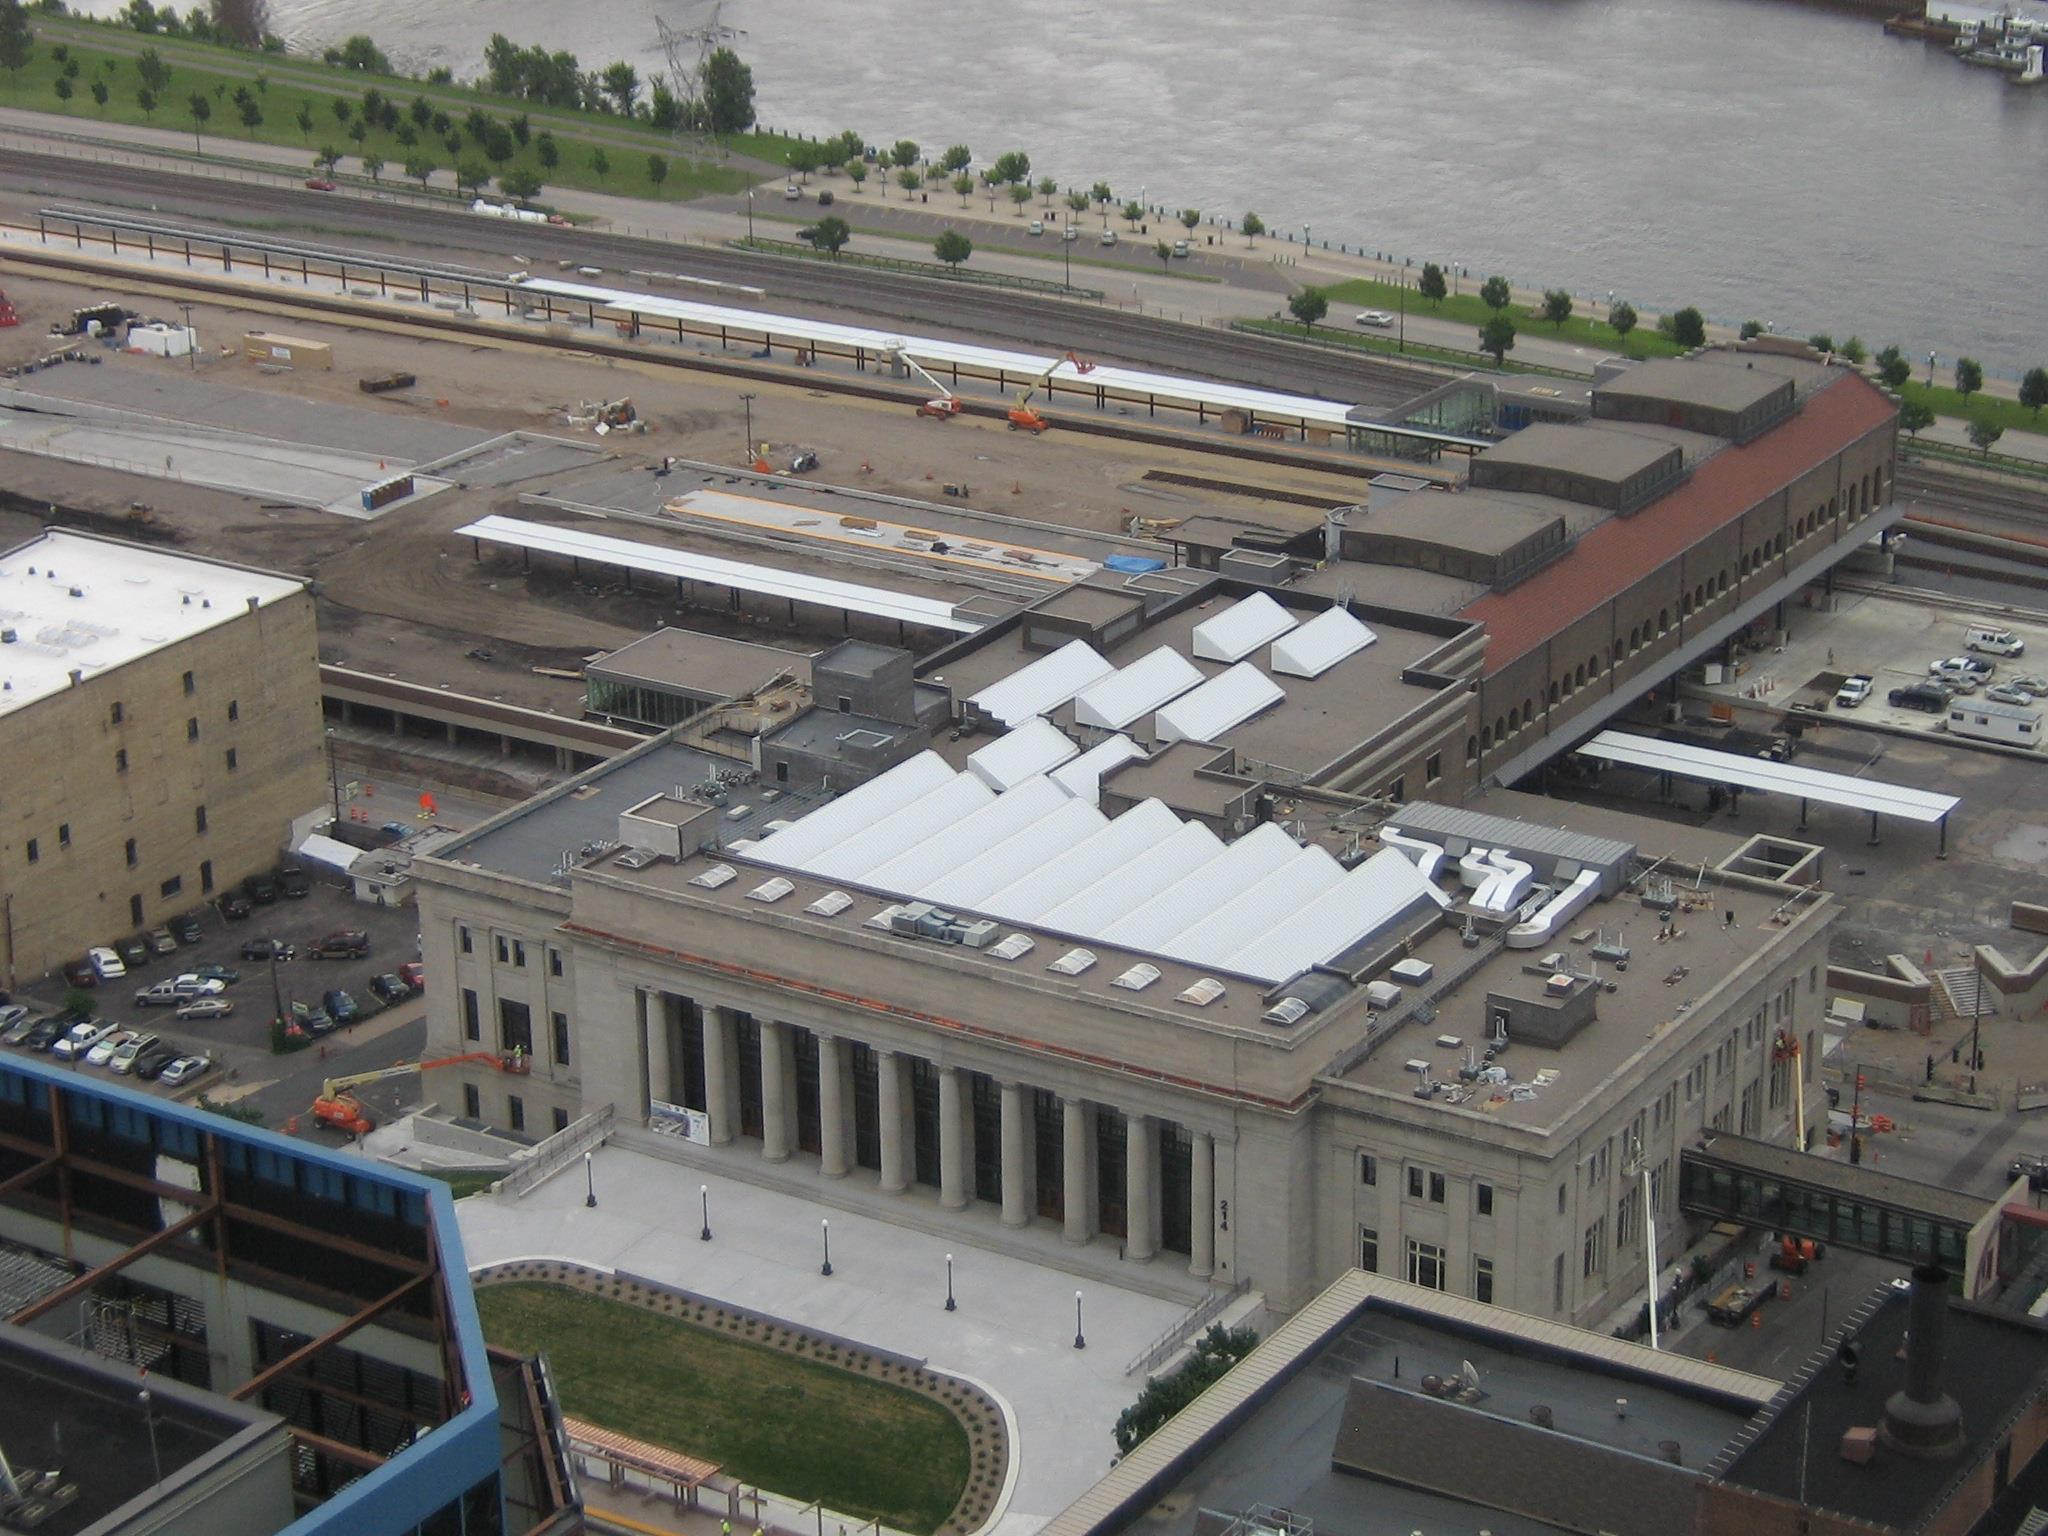 St. Paul's Union Depot was restored between 2010 and 2012.